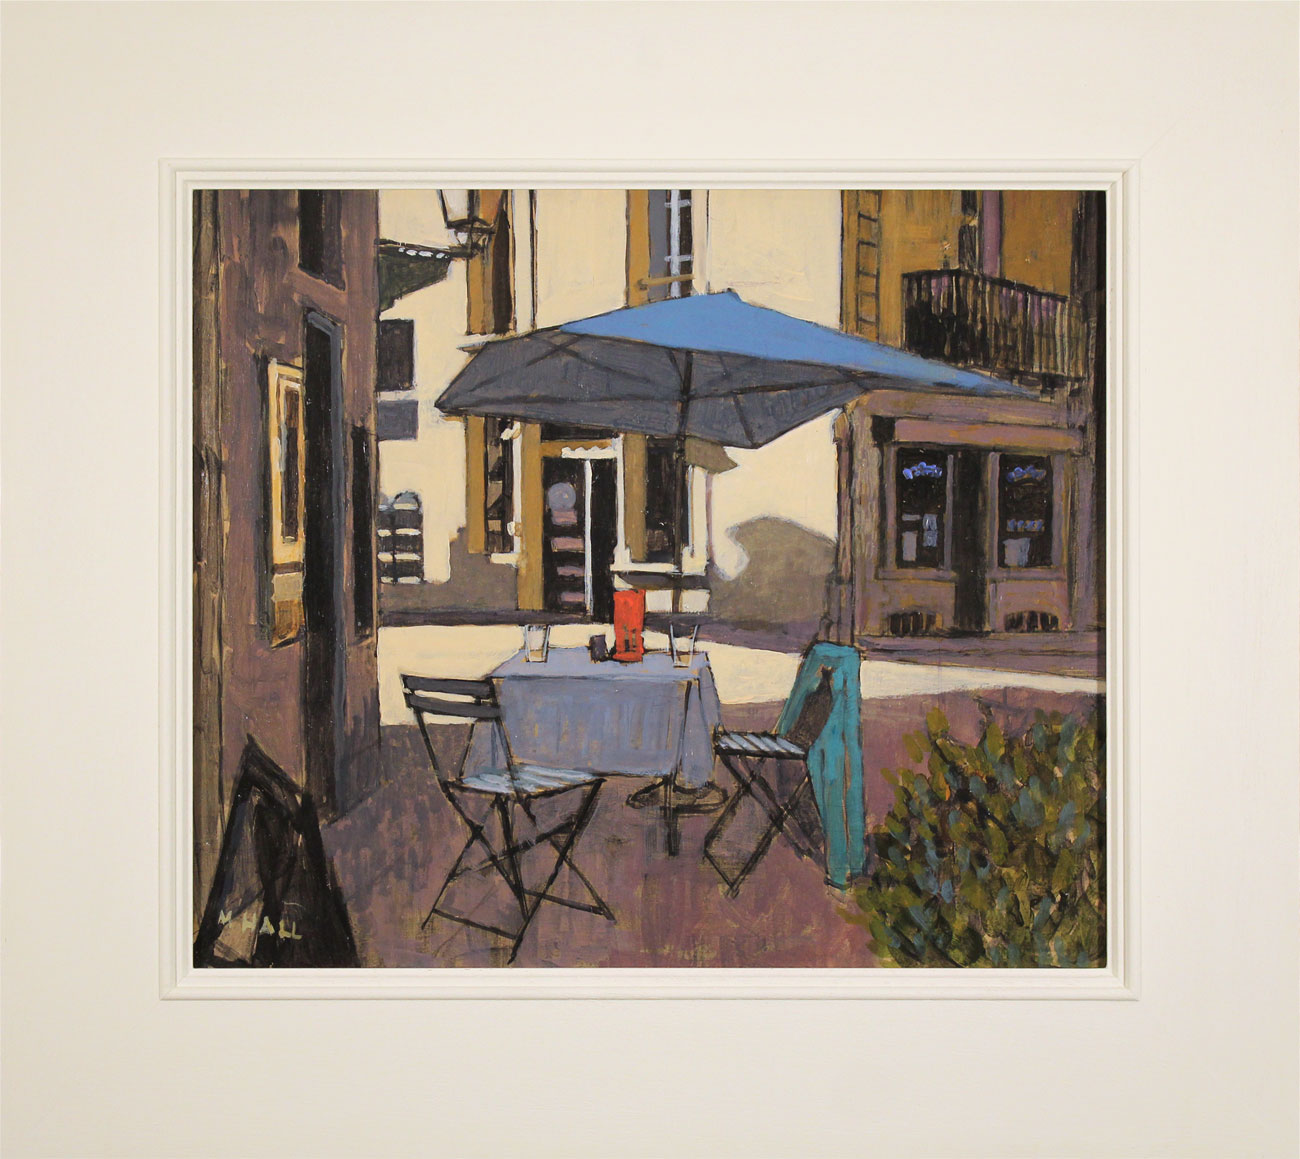 Mike Hall, Original acrylic painting on board, Café Table. Click to enlarge